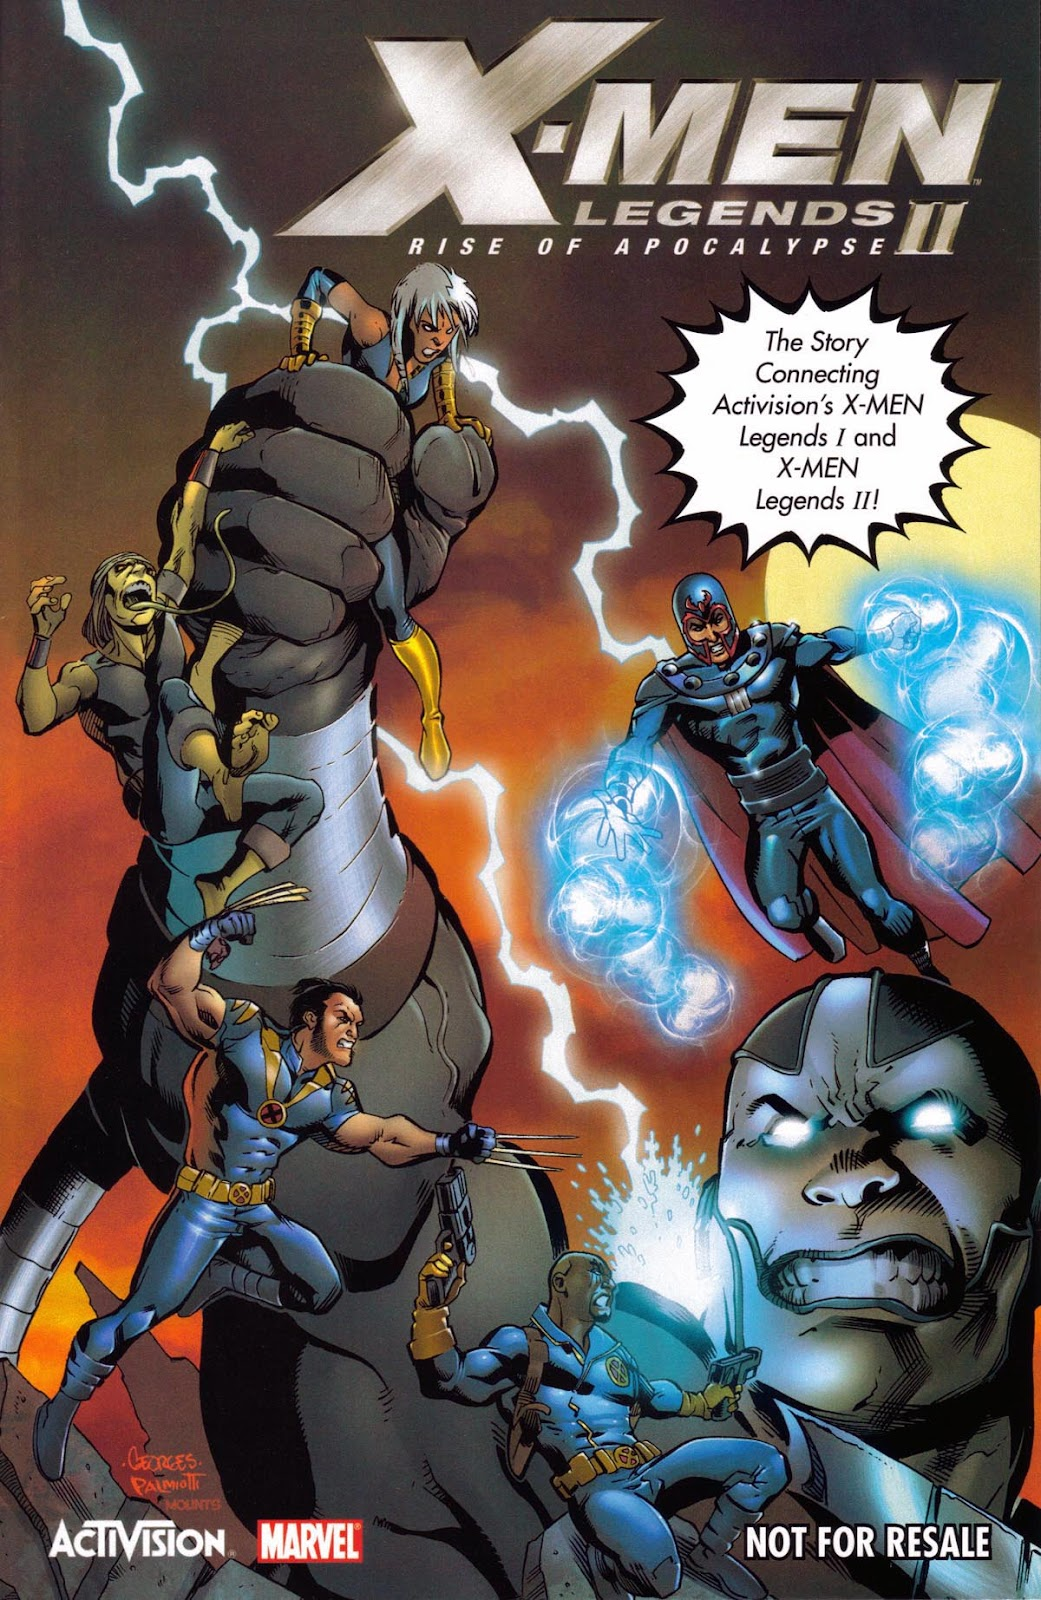 X-Men Legends II: Rise of Apocalypse (Activision) Full Page 1